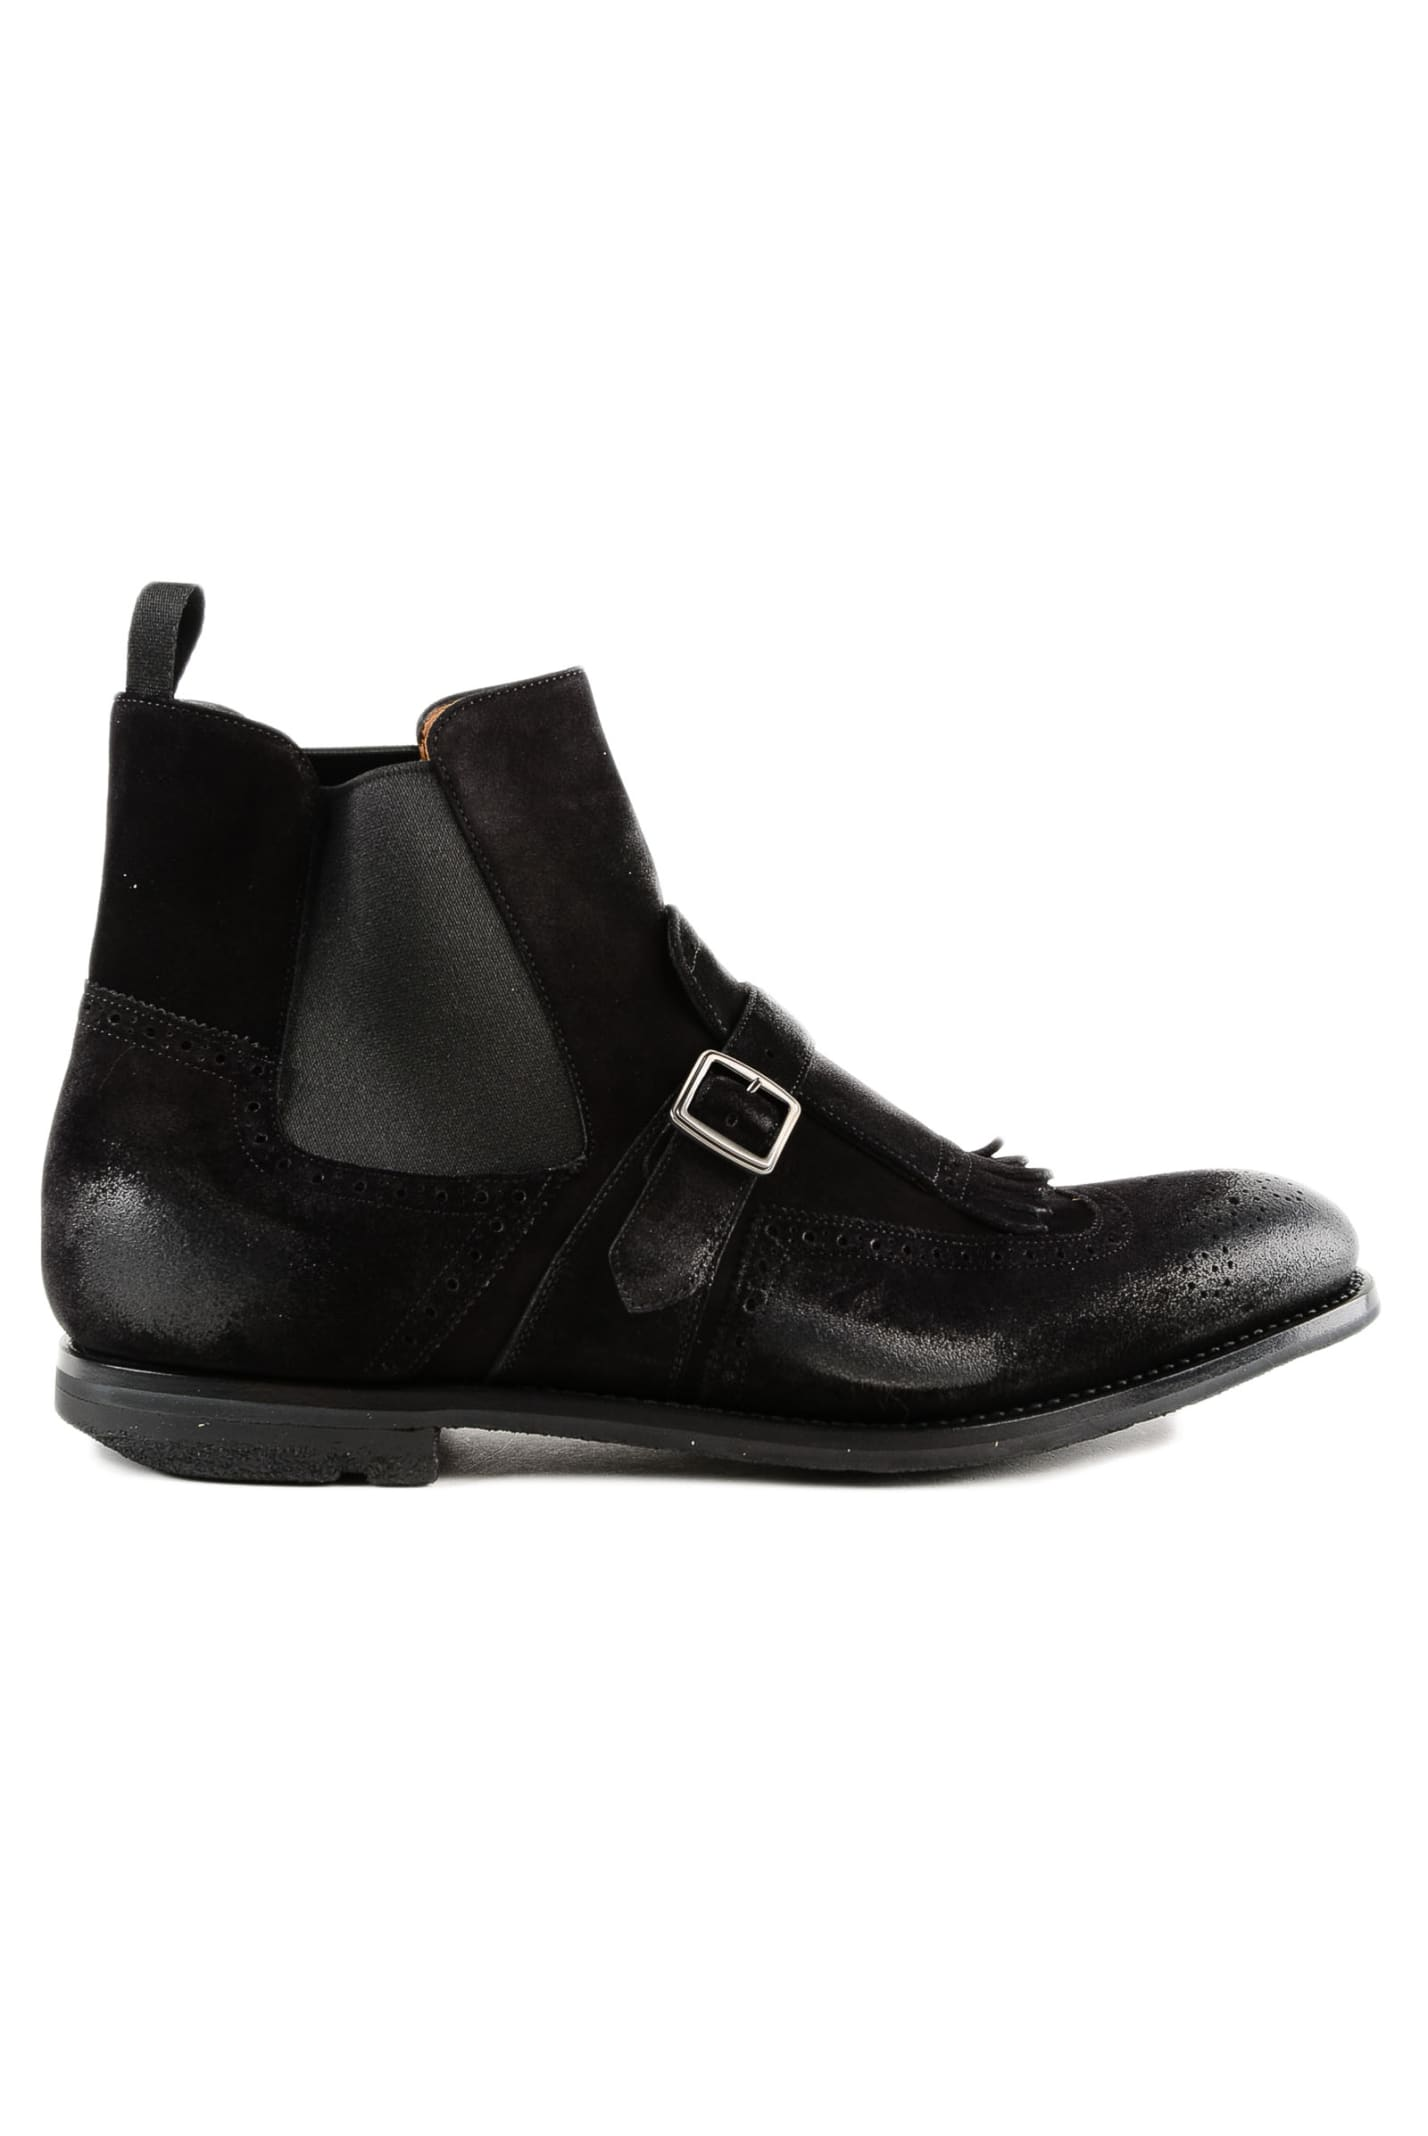 Churchs Buckle Detail Ankle Boots